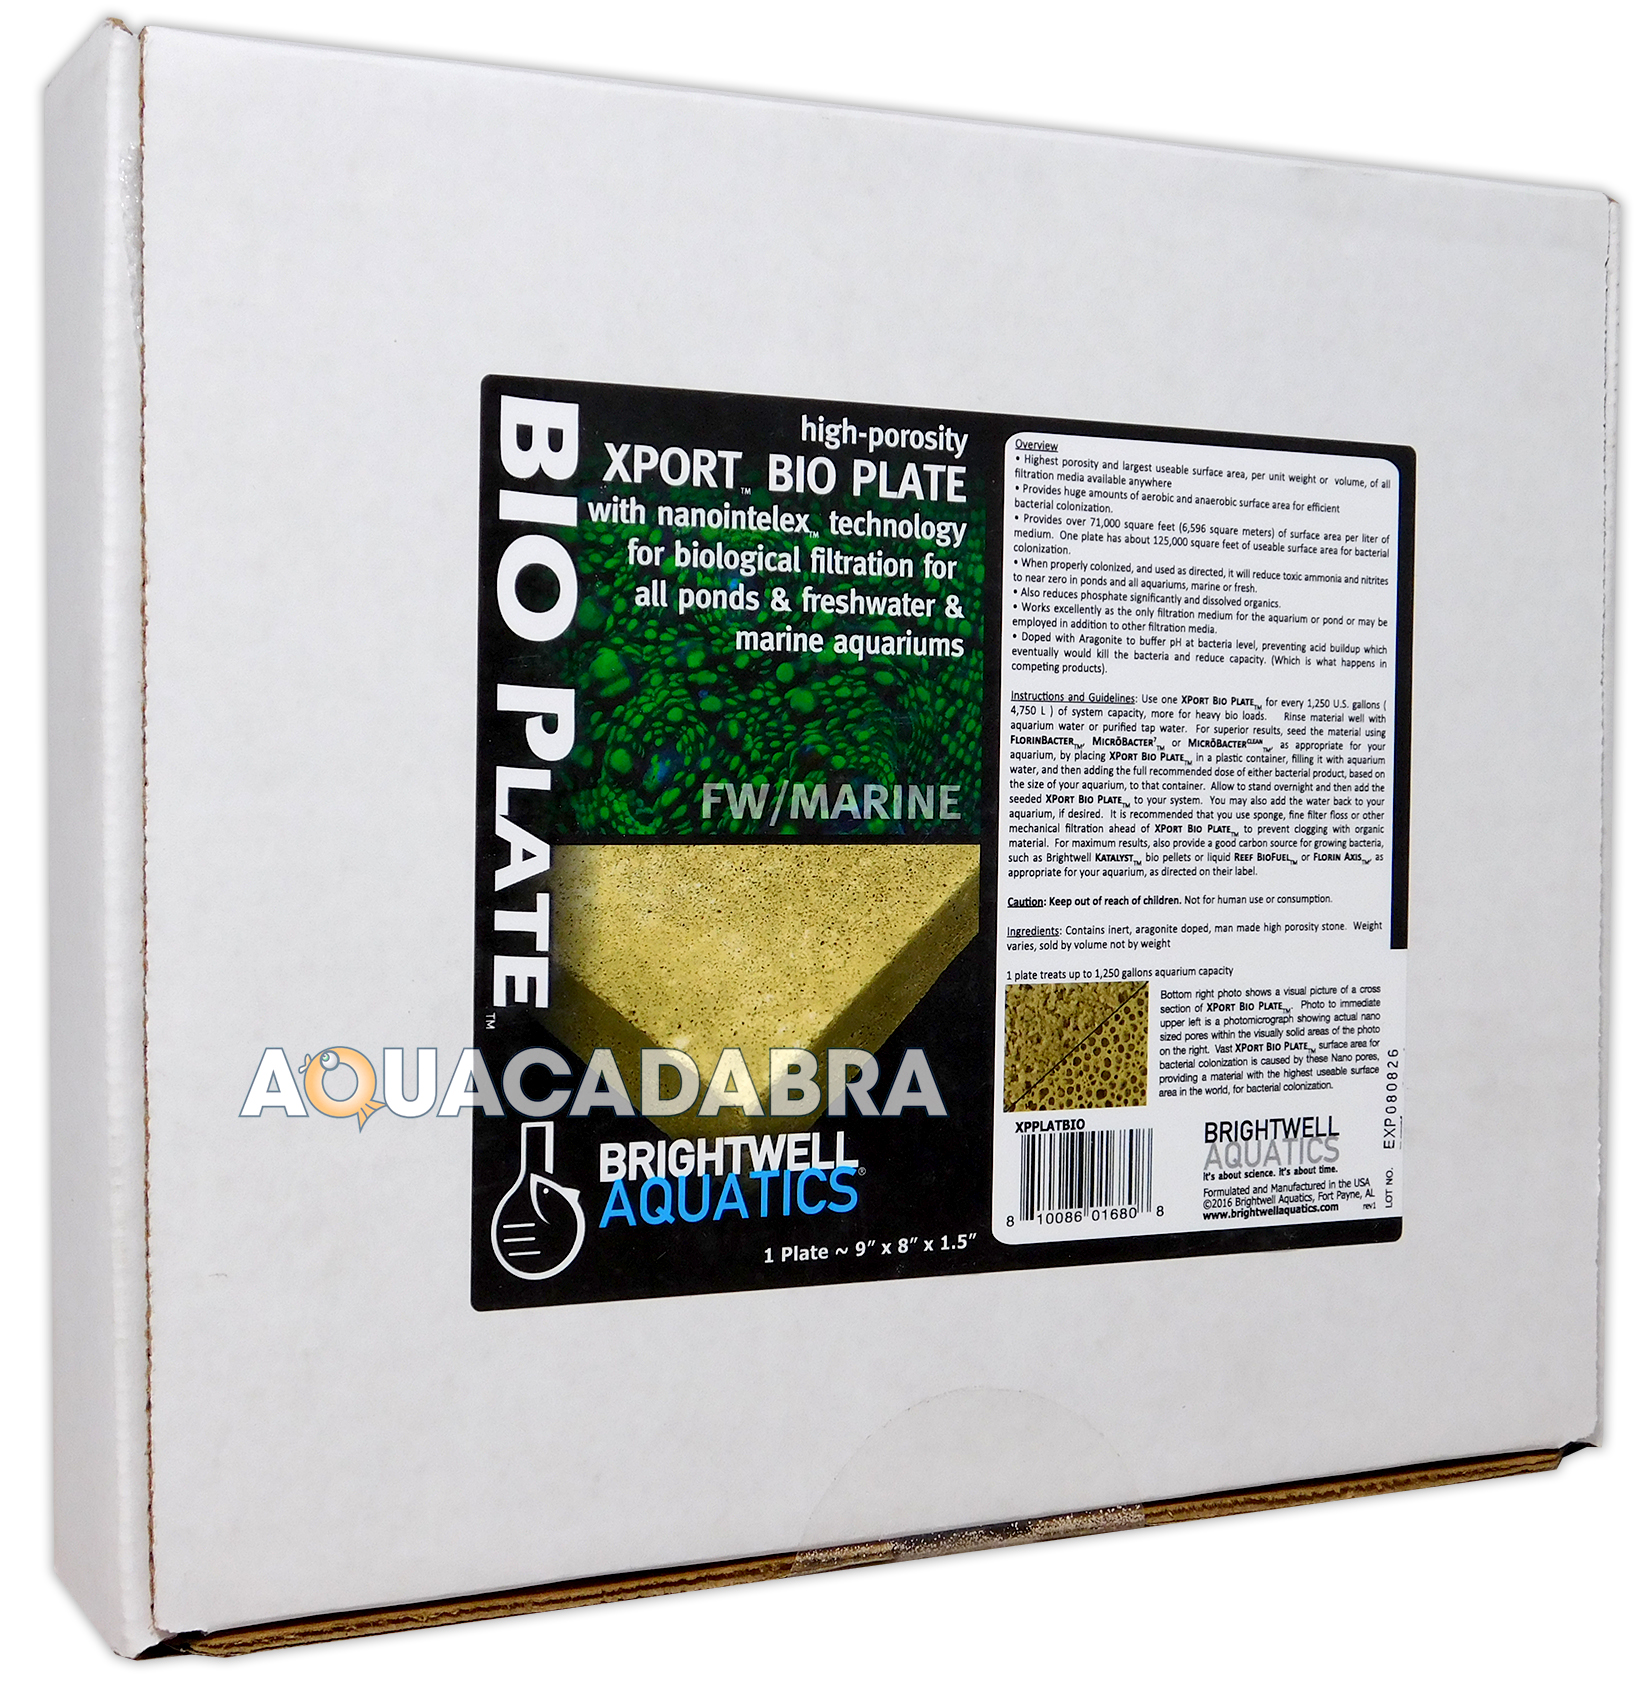 Brightwell xport bio plate biological filter media for for Pond bio filter media